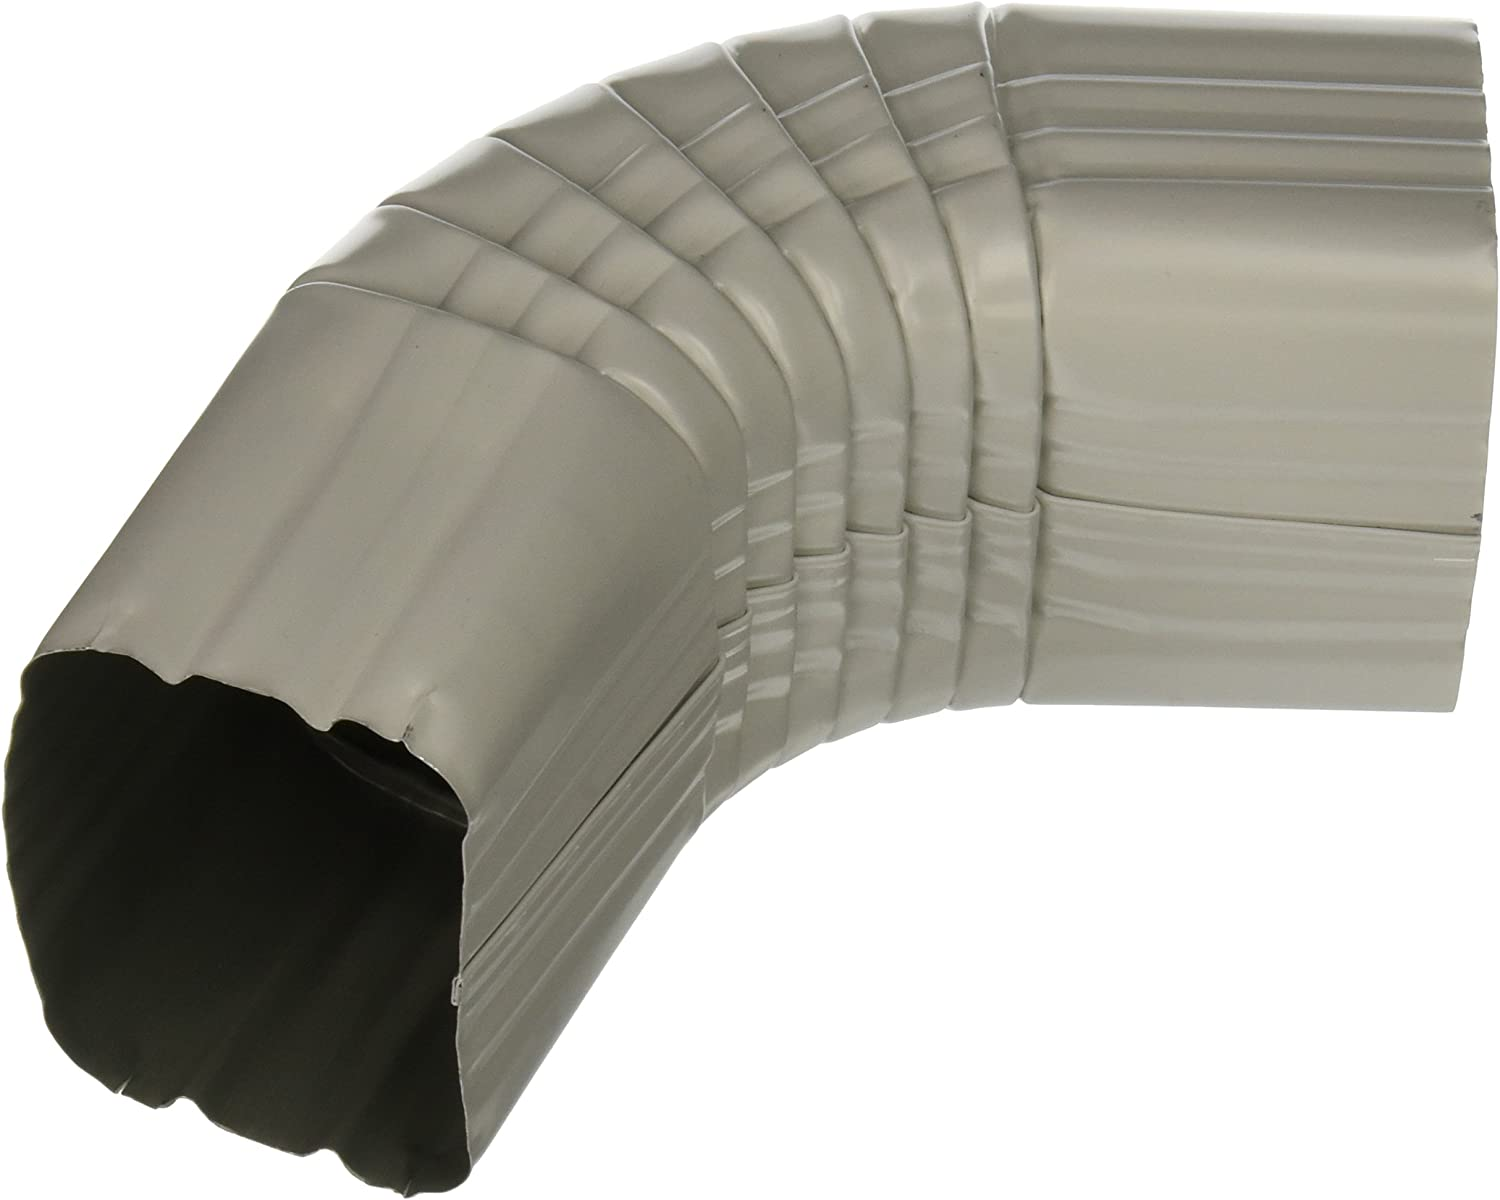 AMERIMAX HOME low-pricing PRODUCTS 47264 3x4 Aluminum Elbow White B Don't miss the campaign